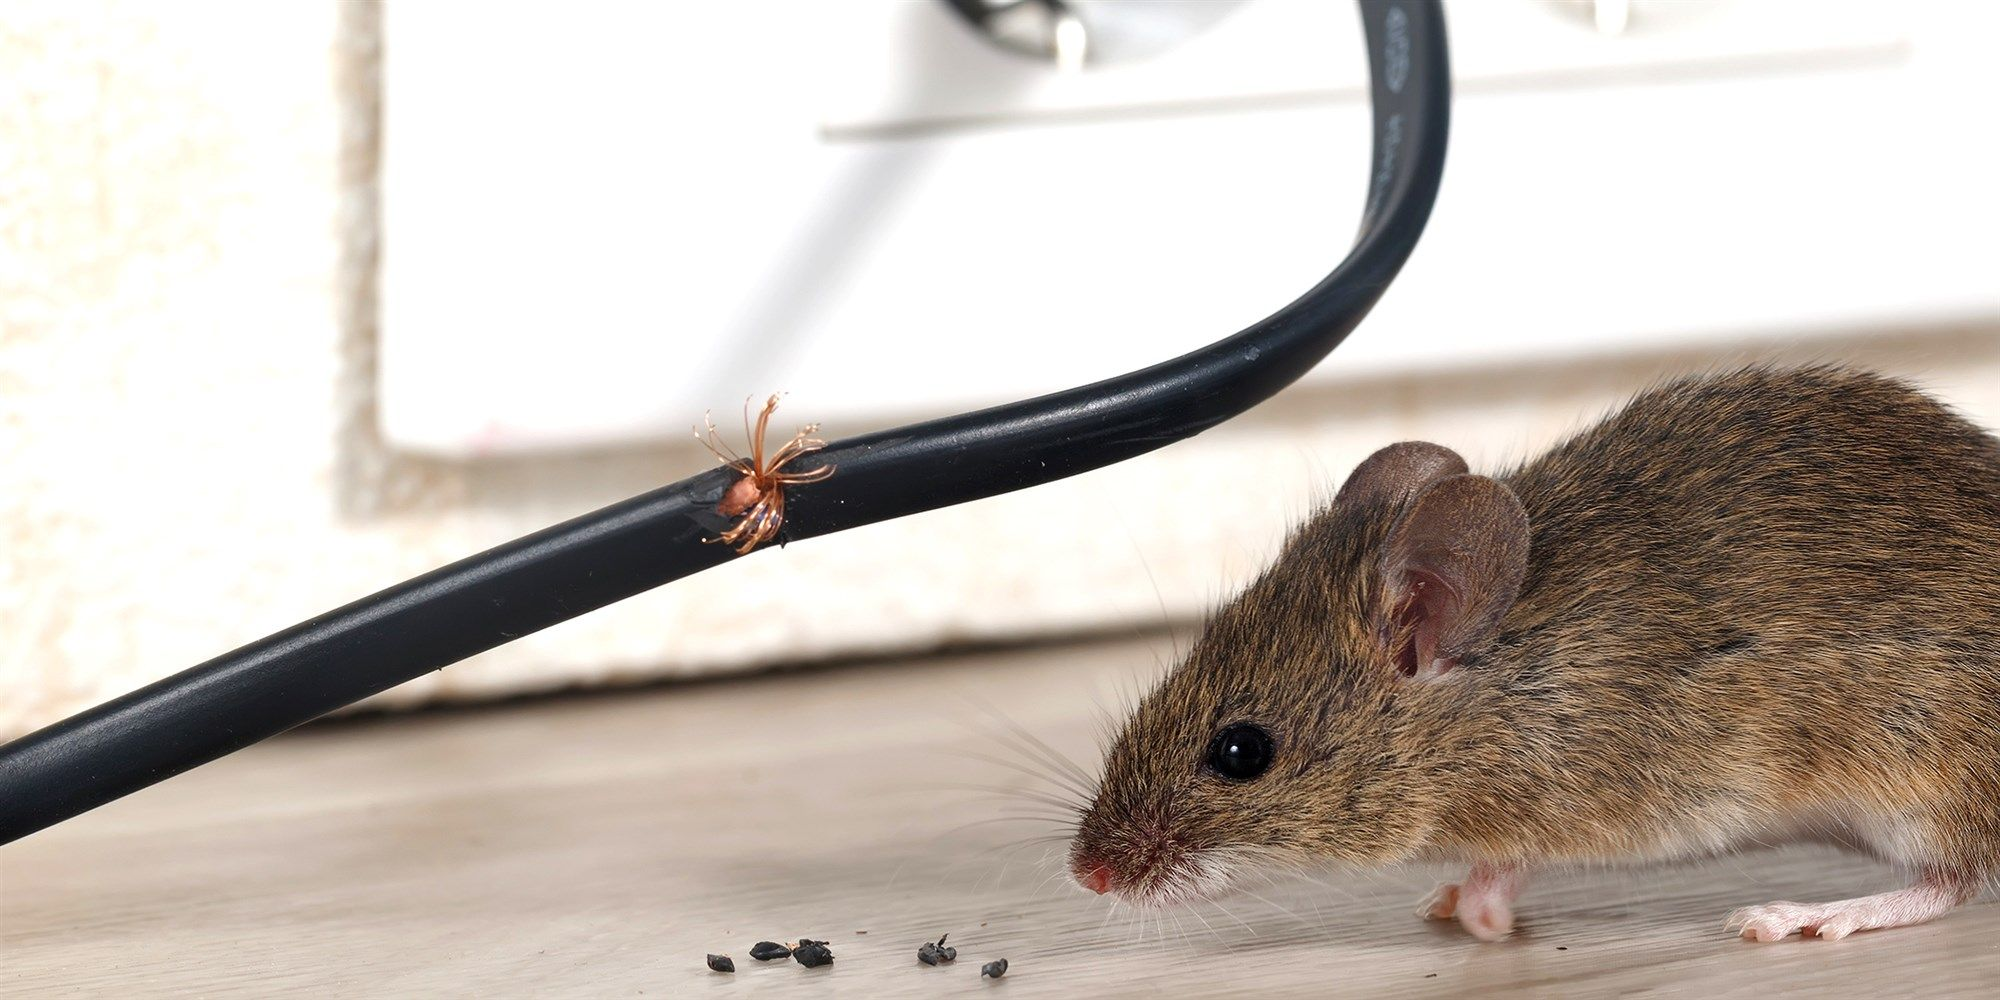 How To Get Rid Of Mice And Rats In Your House Rodent Infestation Getting Rid Of Mice Rodents